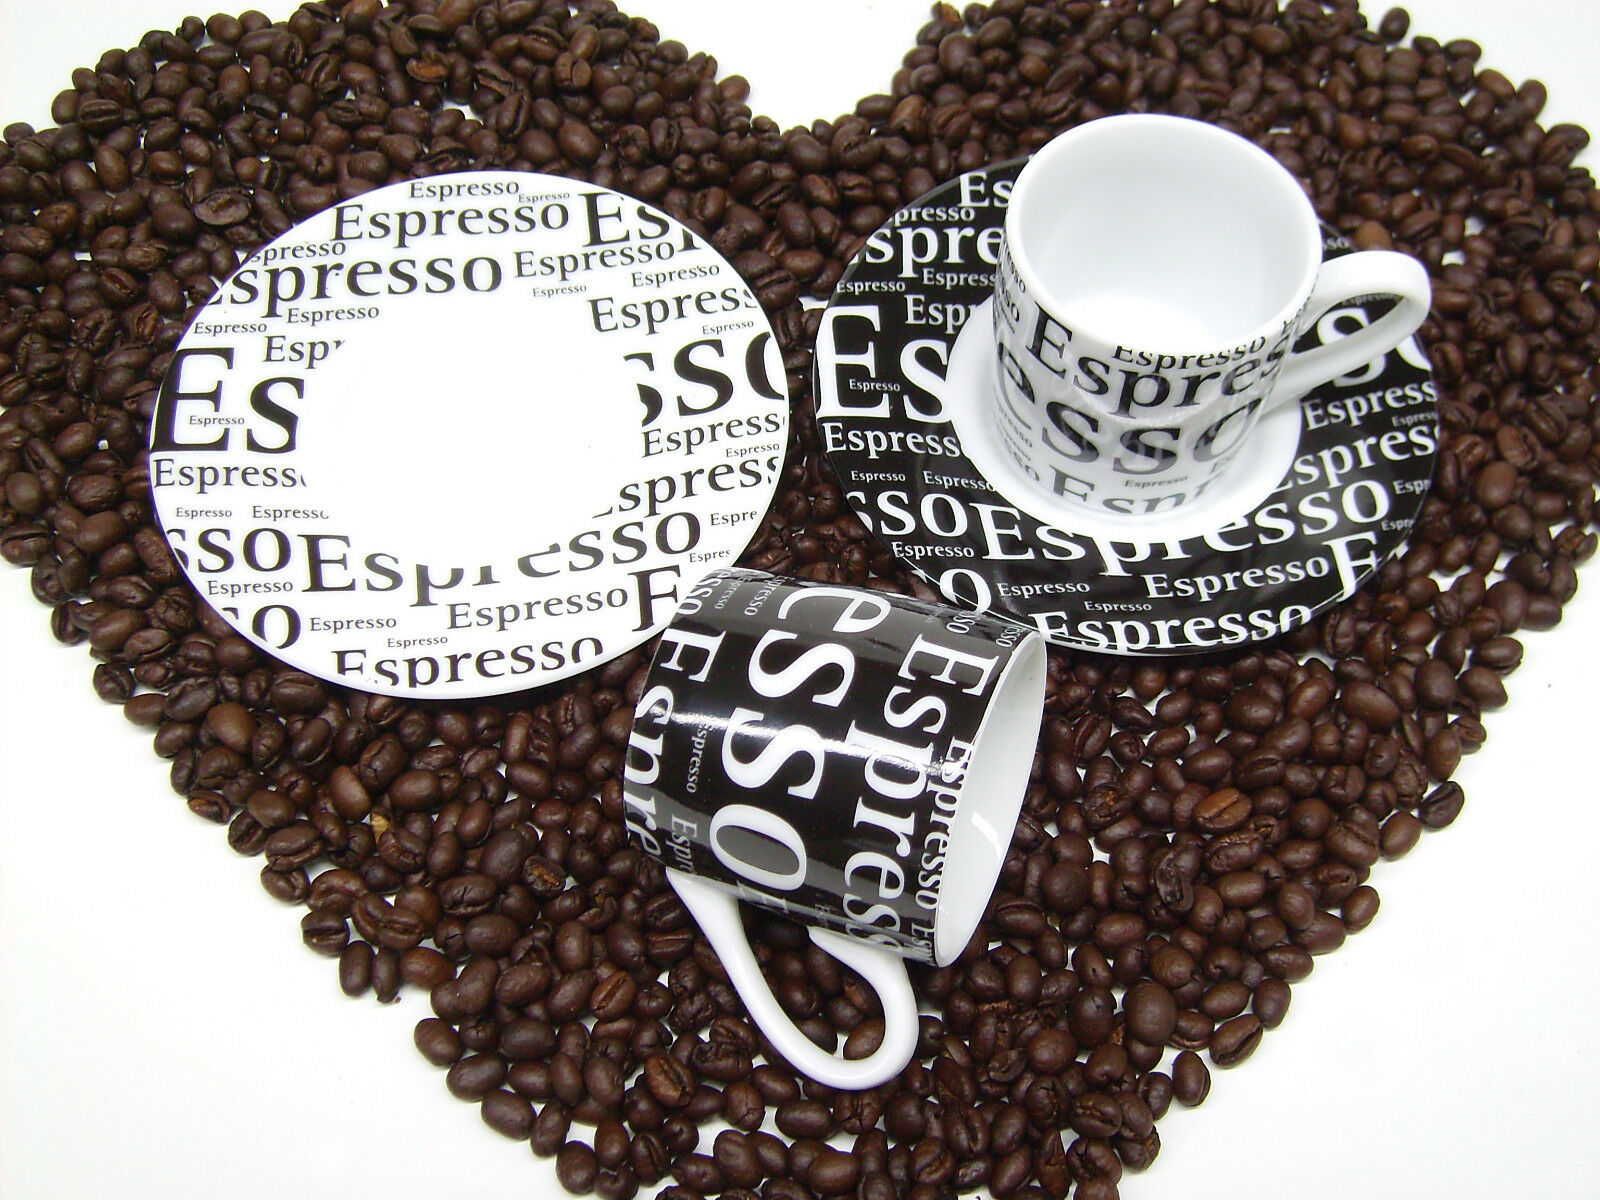 Espresso Cup Set Optional as Set of Two 4 Pieces or as 12 Piece Set of 6